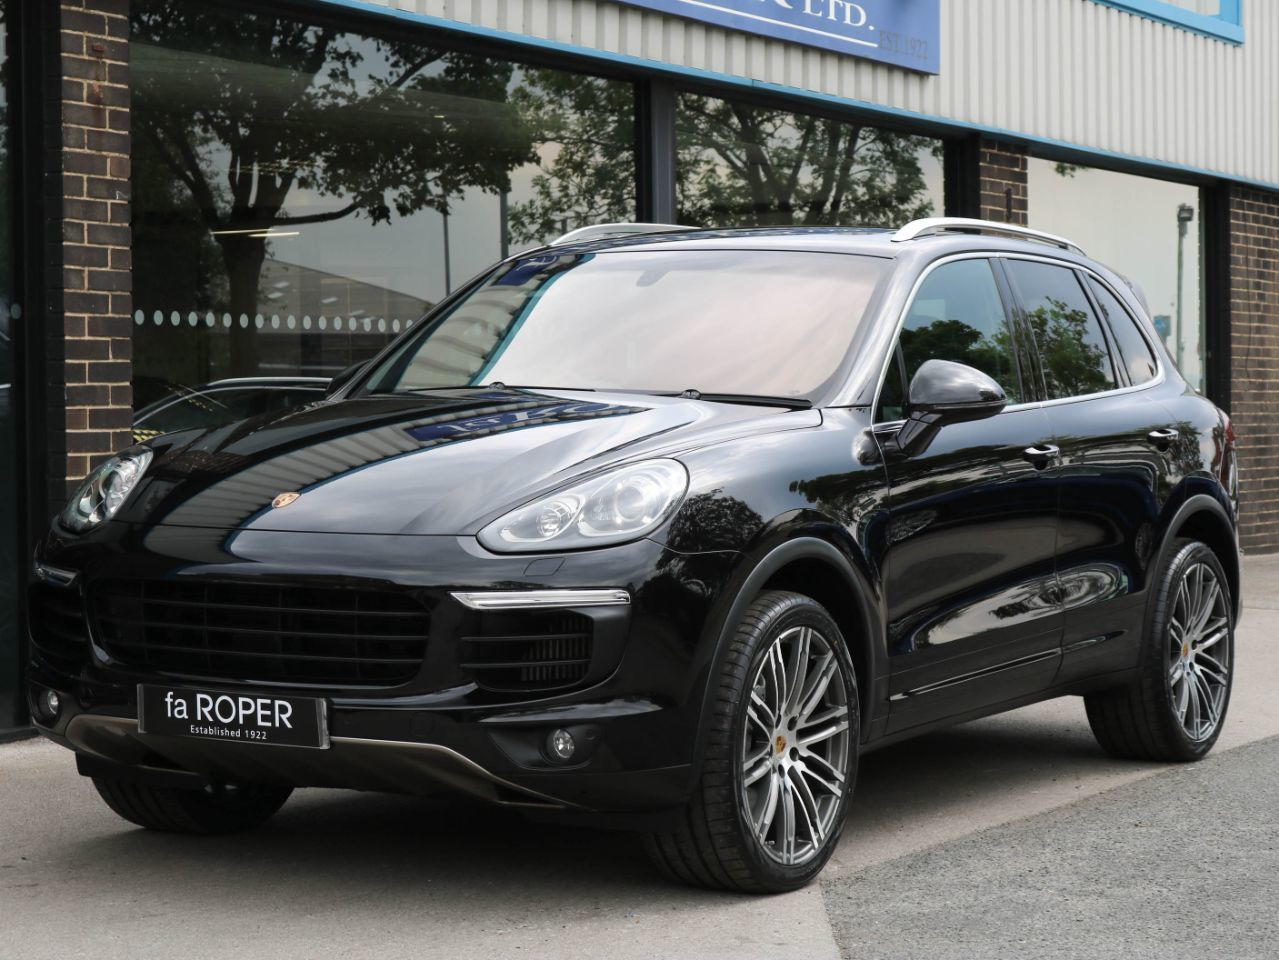 Porsche Cayenne 3.6 V6 S Tiptronic S 420ps Four Wheel Drive Petrol Jet Black MetallicPorsche Cayenne 3.6 V6 S Tiptronic S 420ps Four Wheel Drive Petrol Jet Black Metallic at fa Roper Ltd Bradford